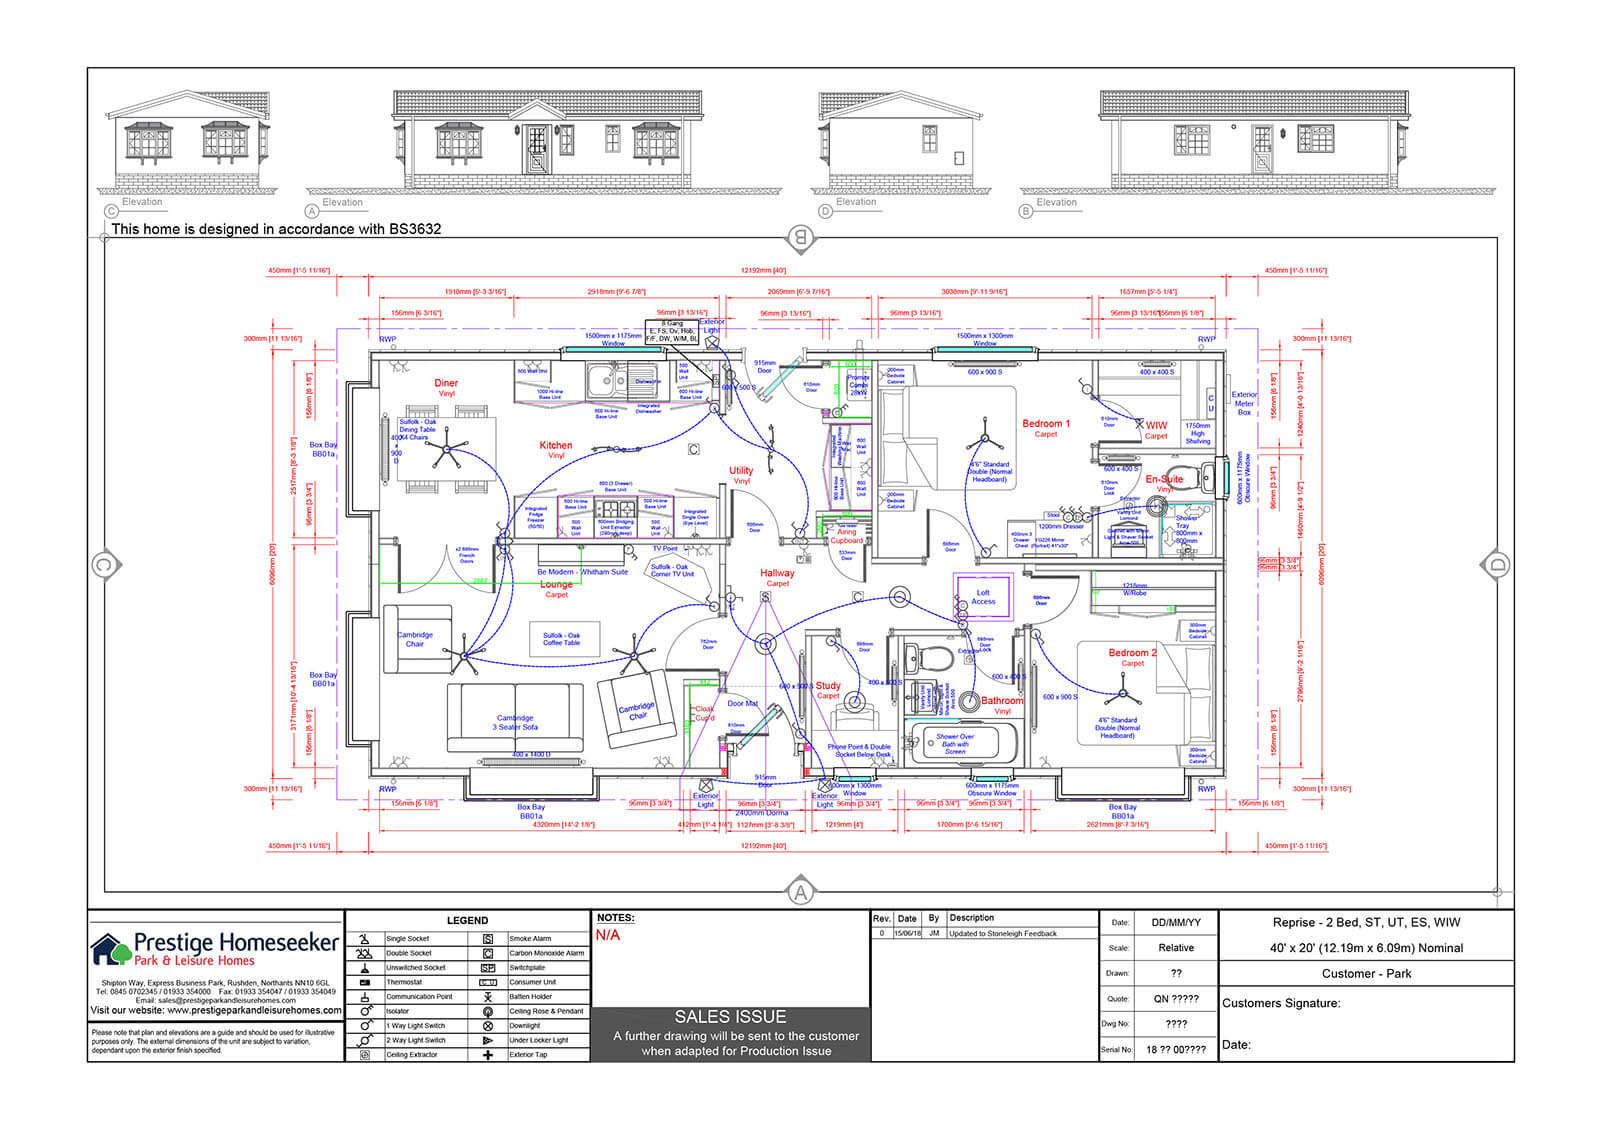 Reprise 40x22 Sample Plan